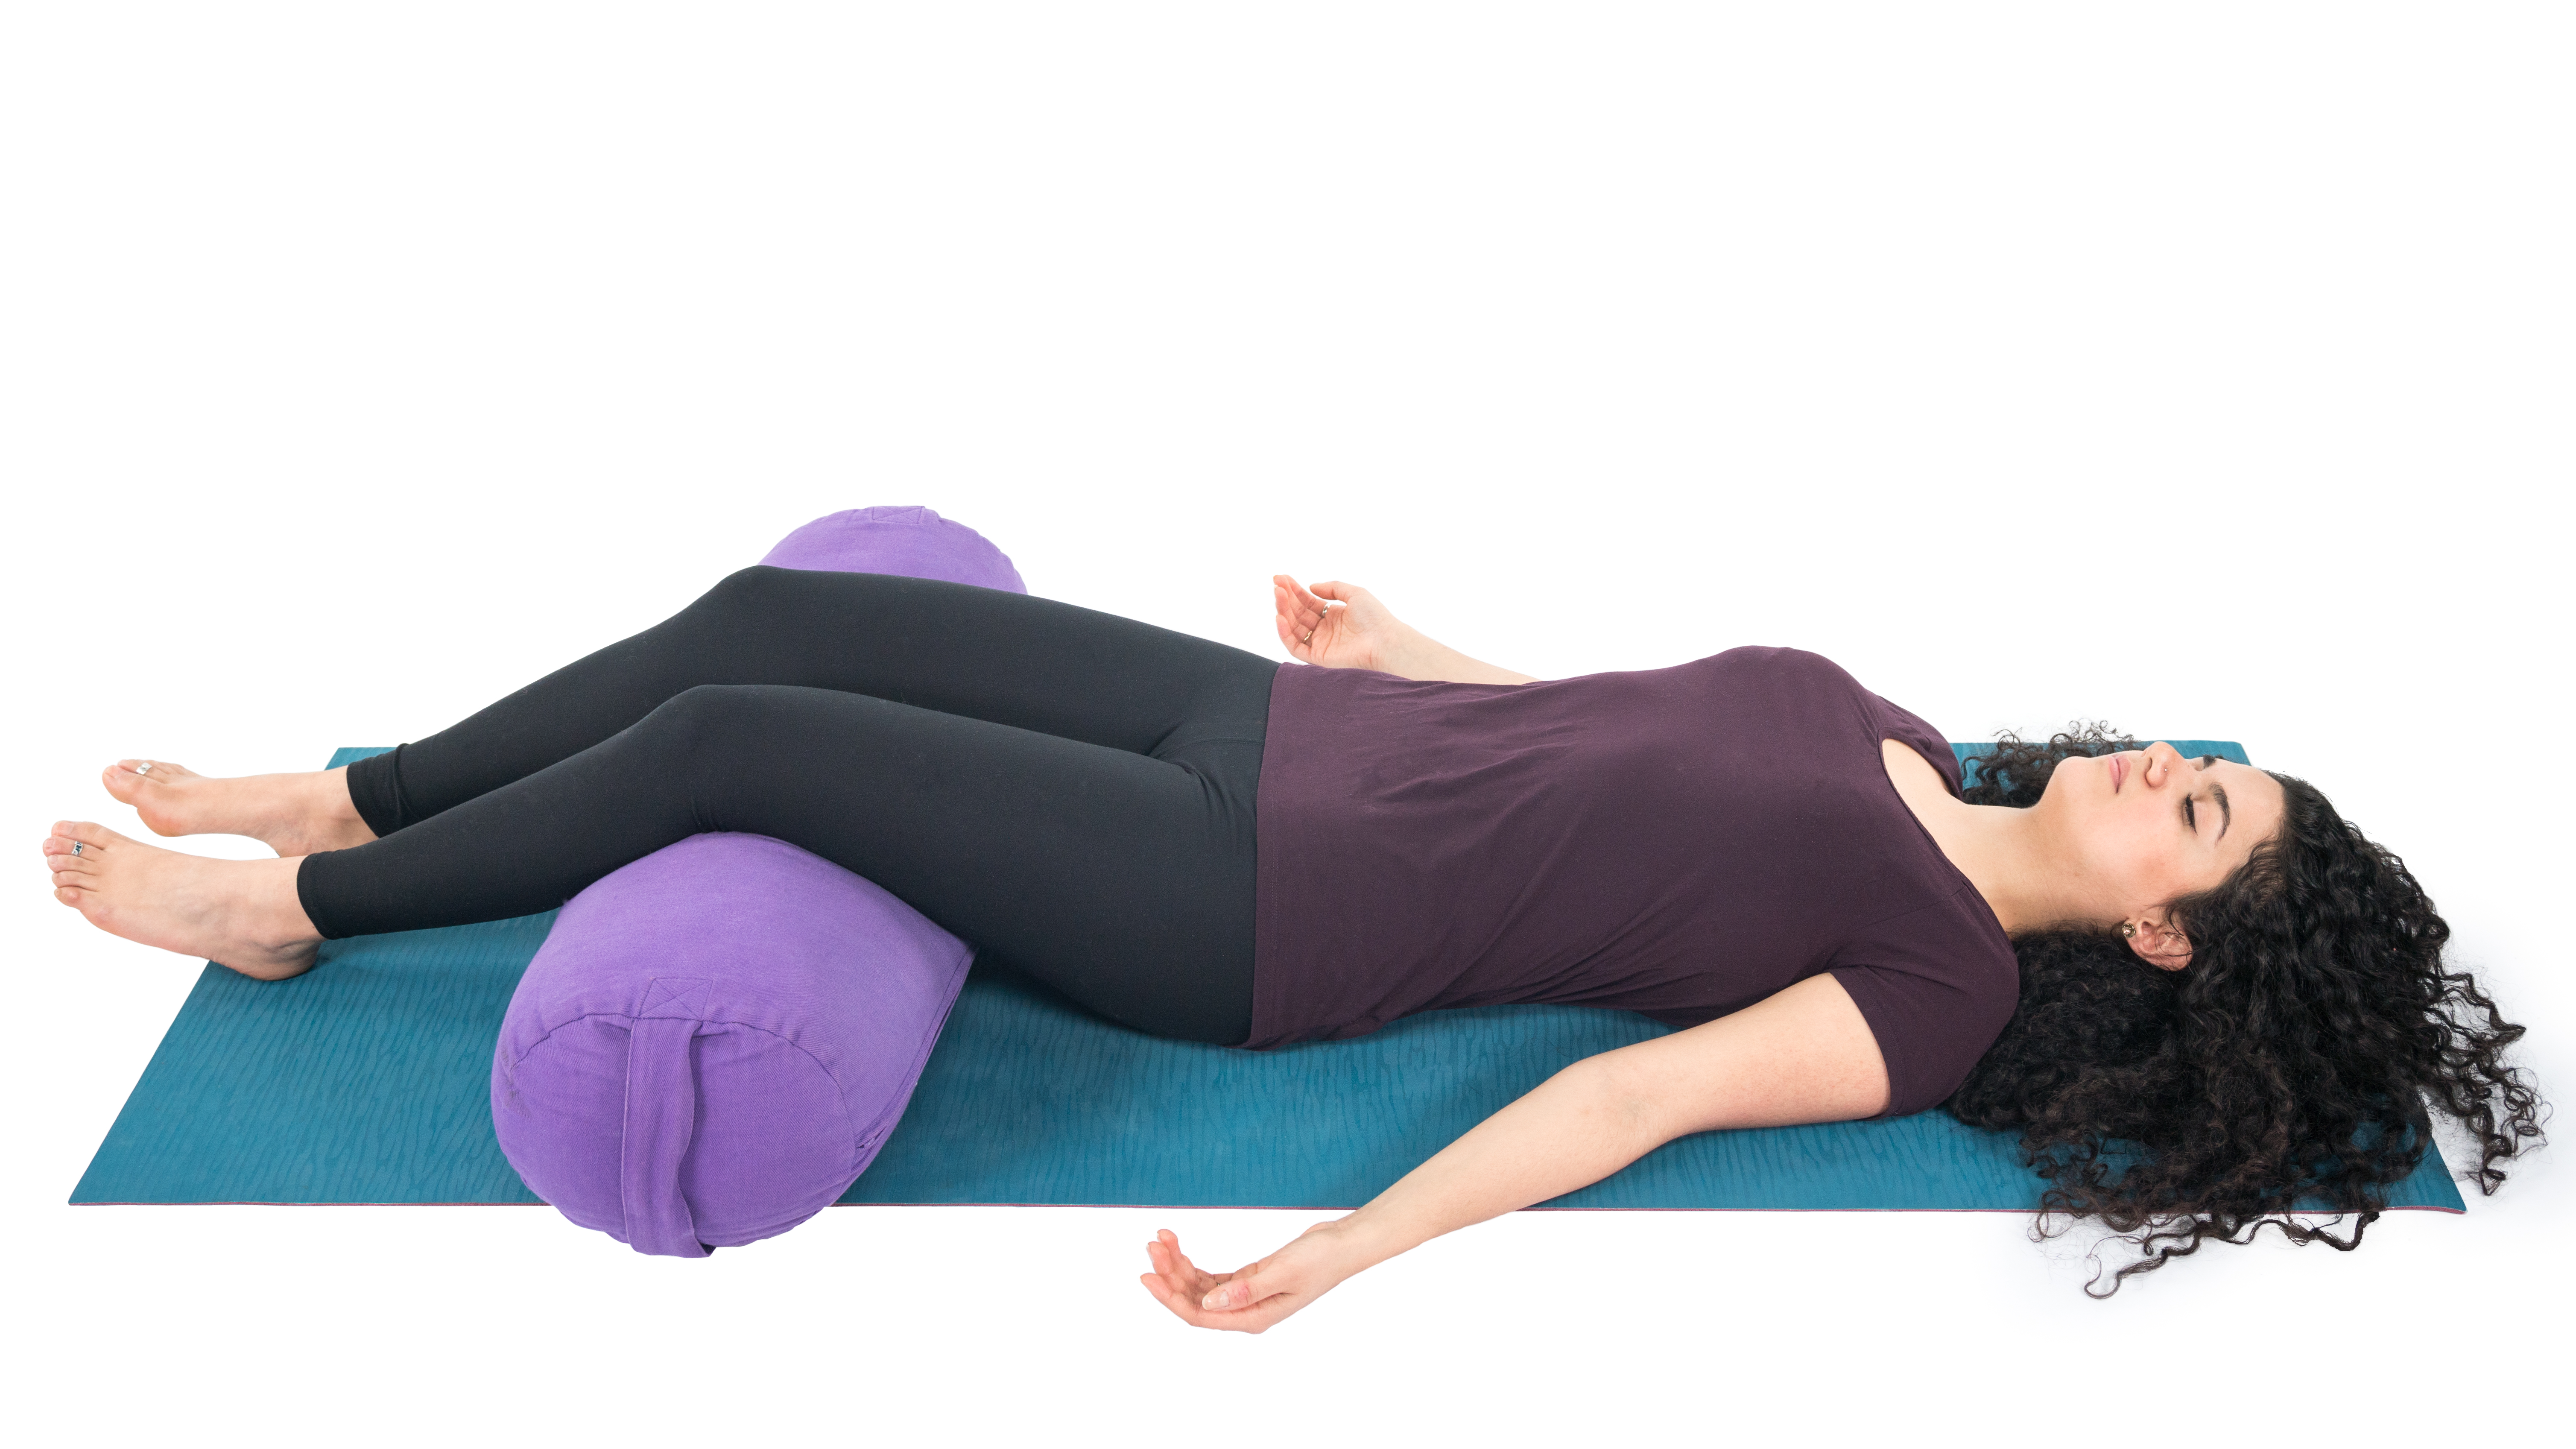 Savasana, corpse pose, resting pose, using props, beginner's yoga, slowing down, slow yoga